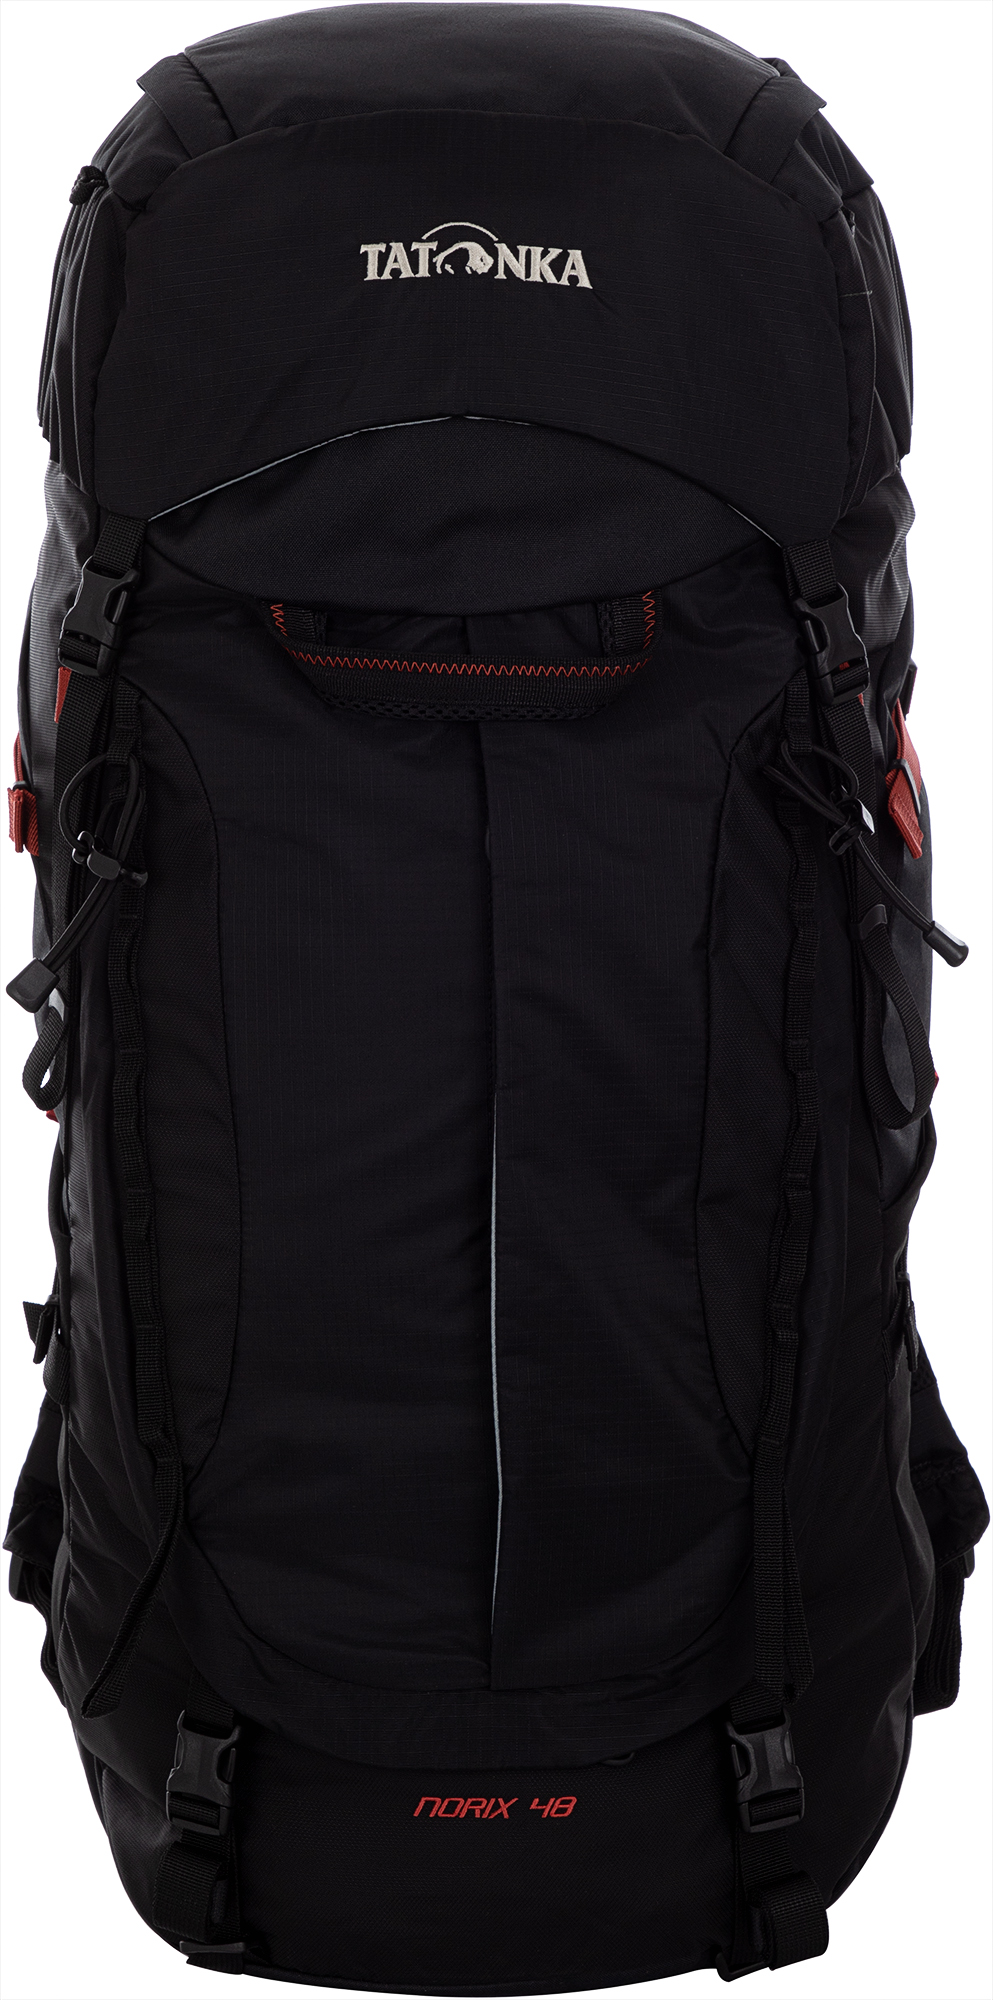 Tatonka Tatonka NORIX 48 tatonka sherpa dome plus